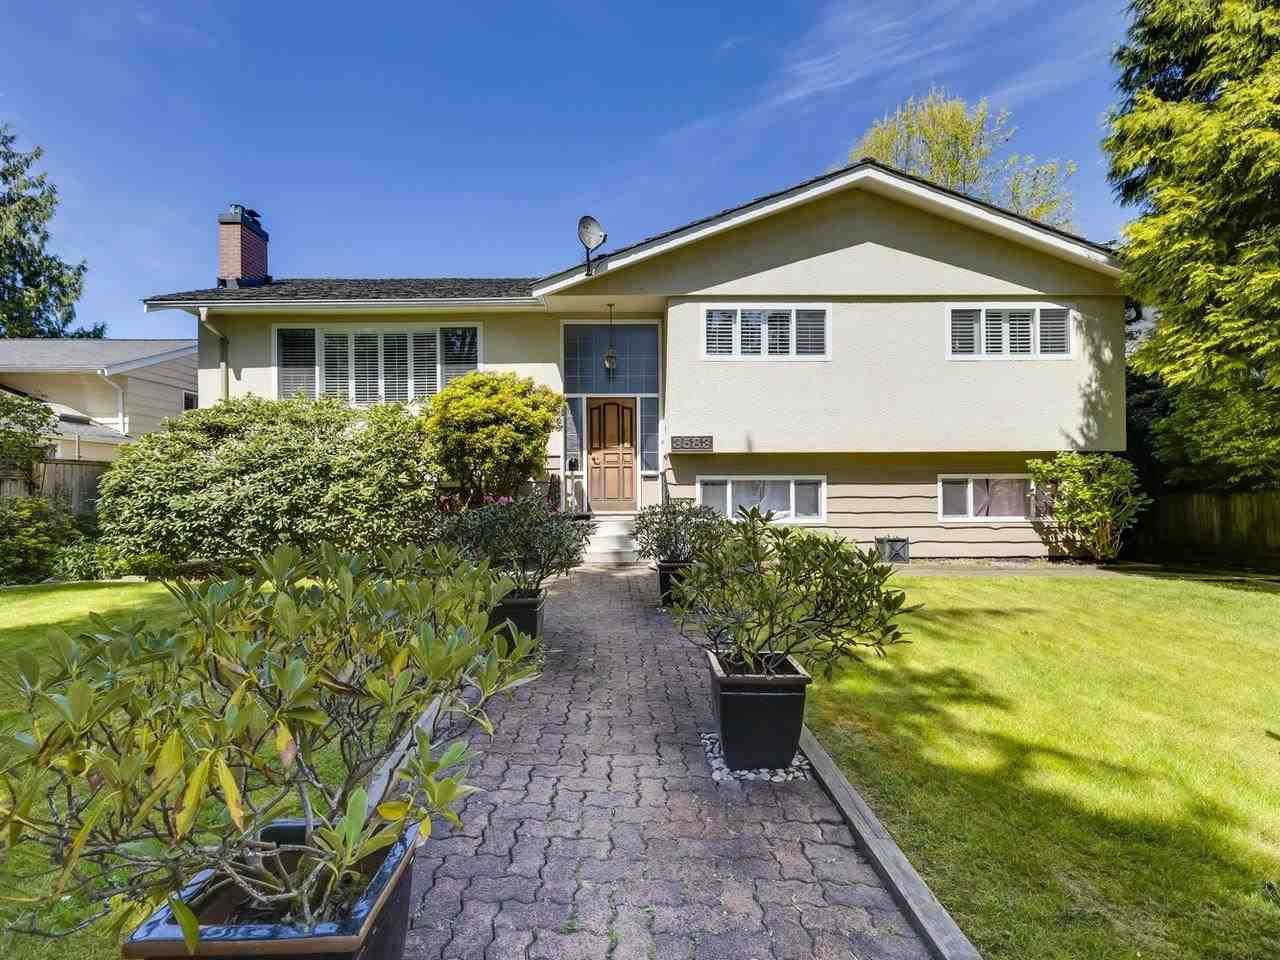 """Main Photo: 3583 W 50TH Avenue in Vancouver: Southlands House for sale in """"SOUTHLANDS"""" (Vancouver West)  : MLS®# R2580864"""